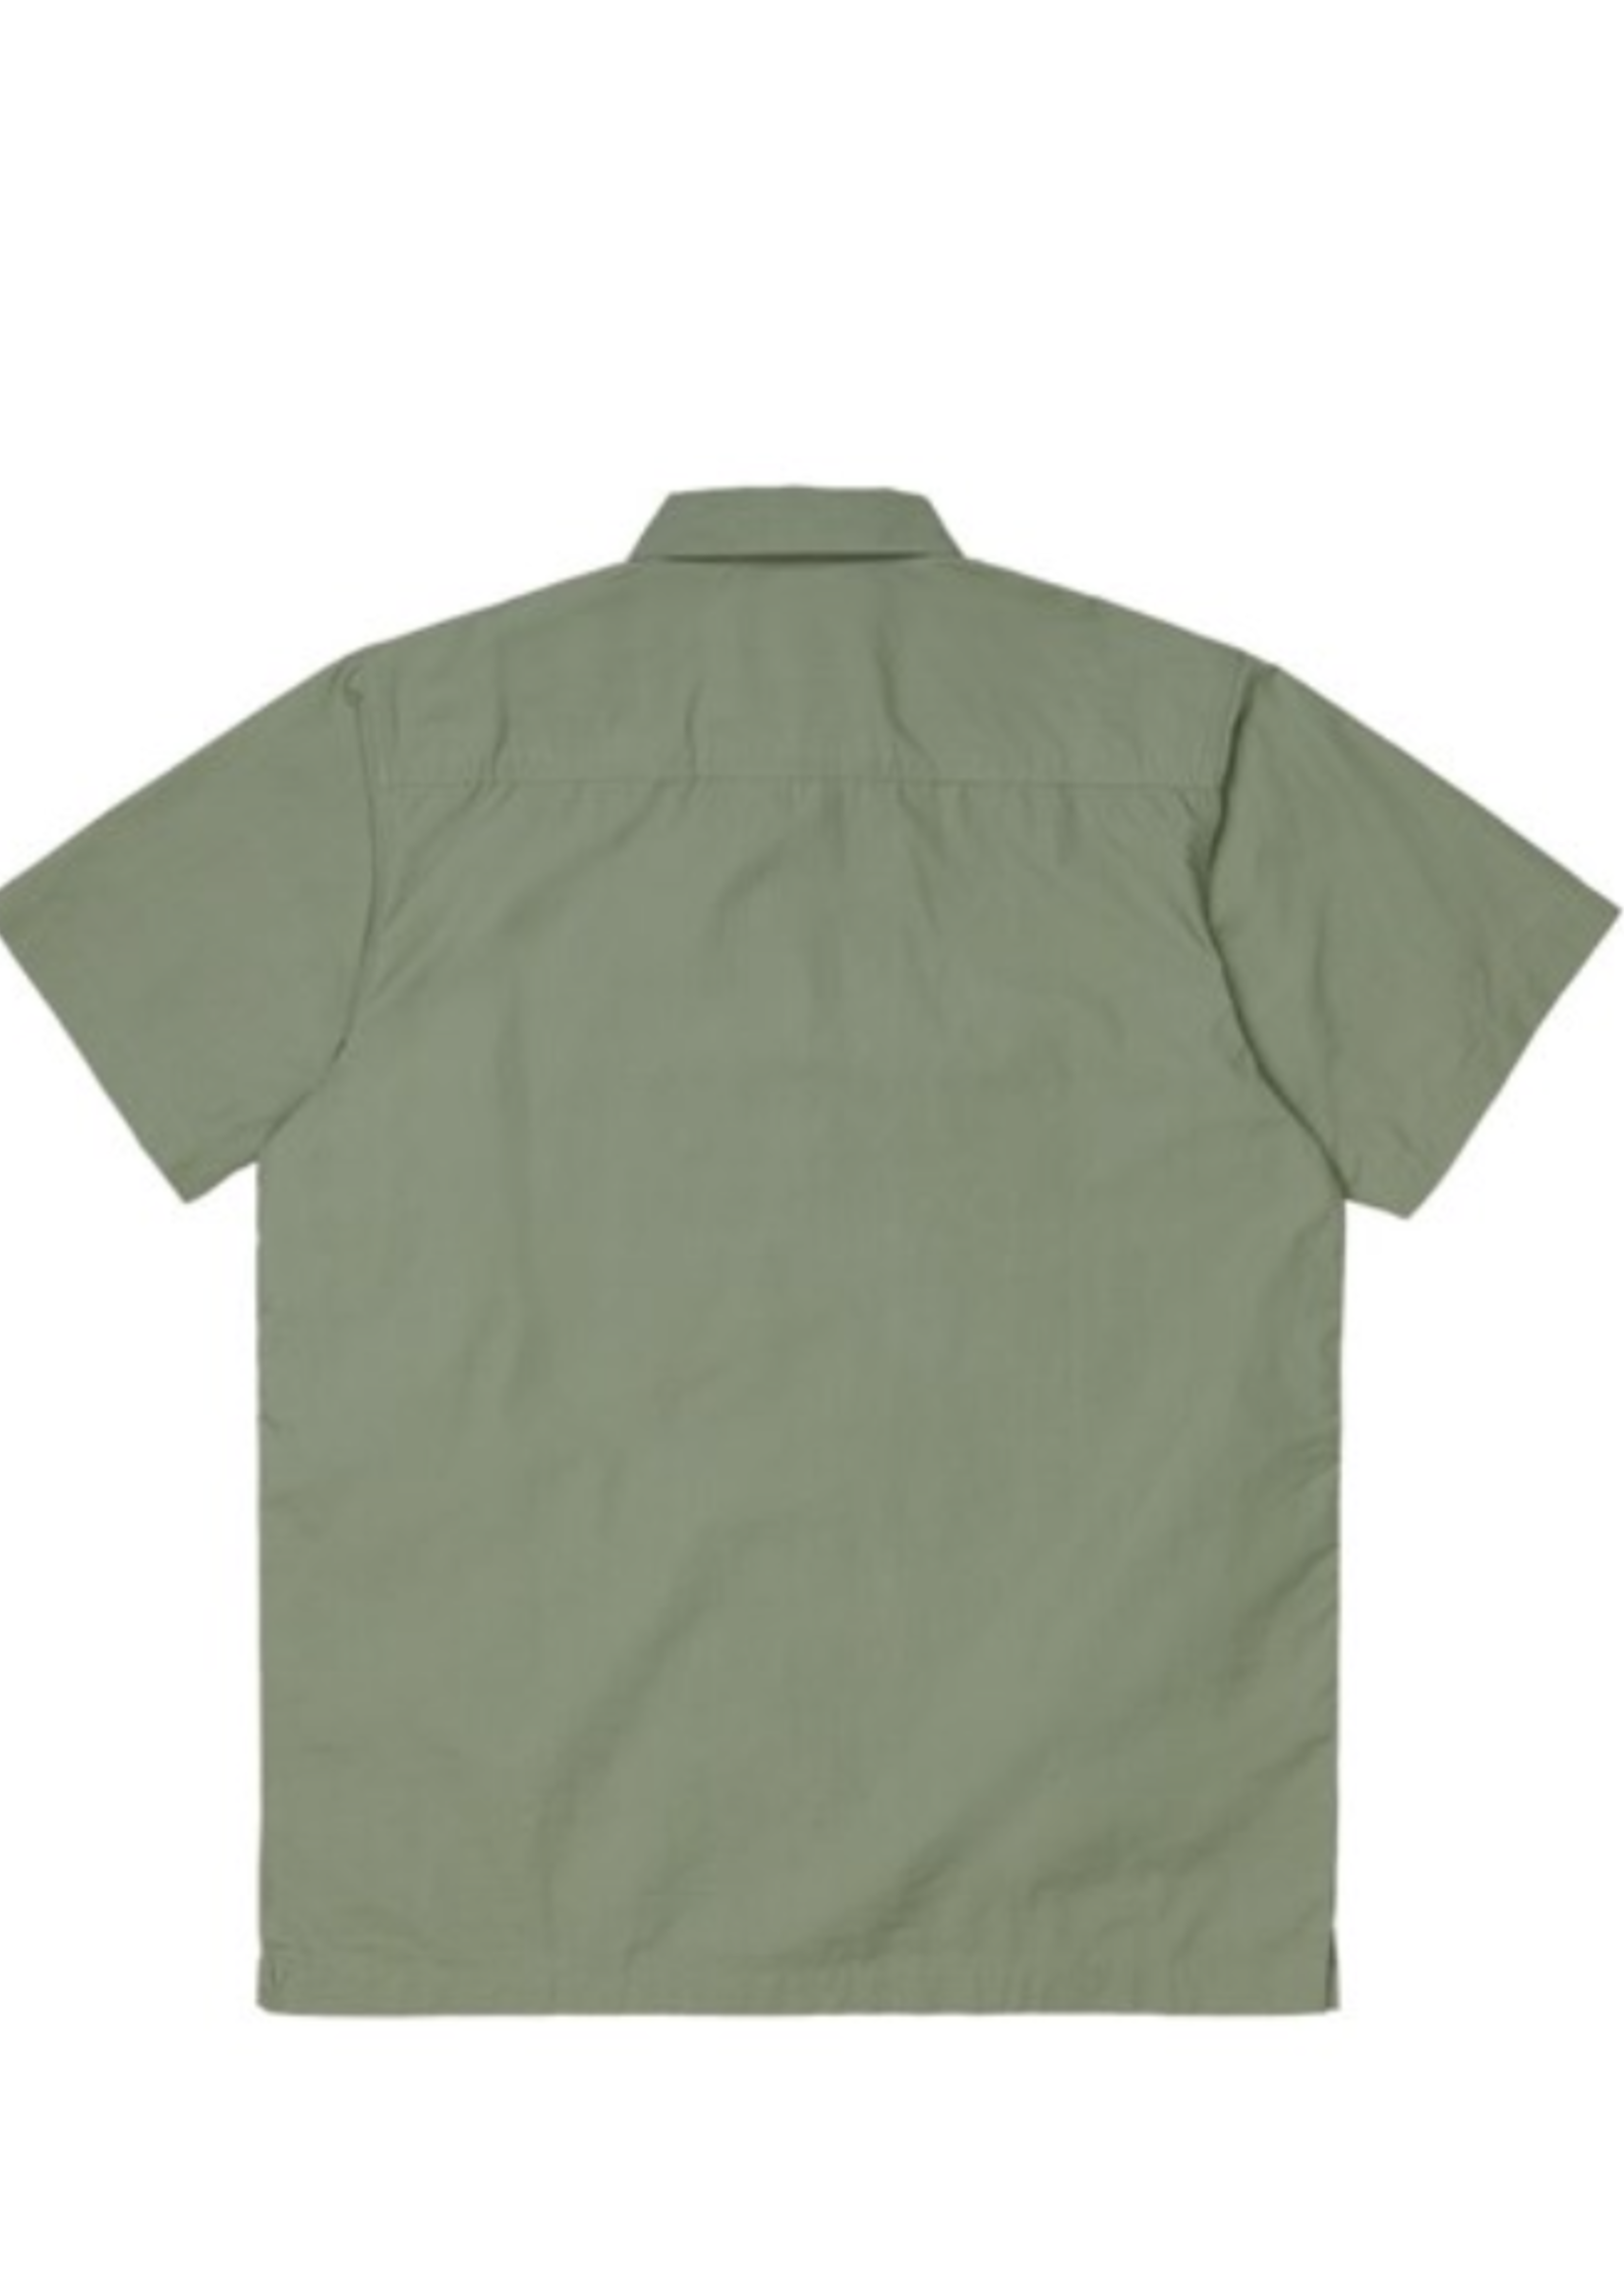 Carhartt Work In Progress Creek Multi-Pocket Shirt in Dollar Green